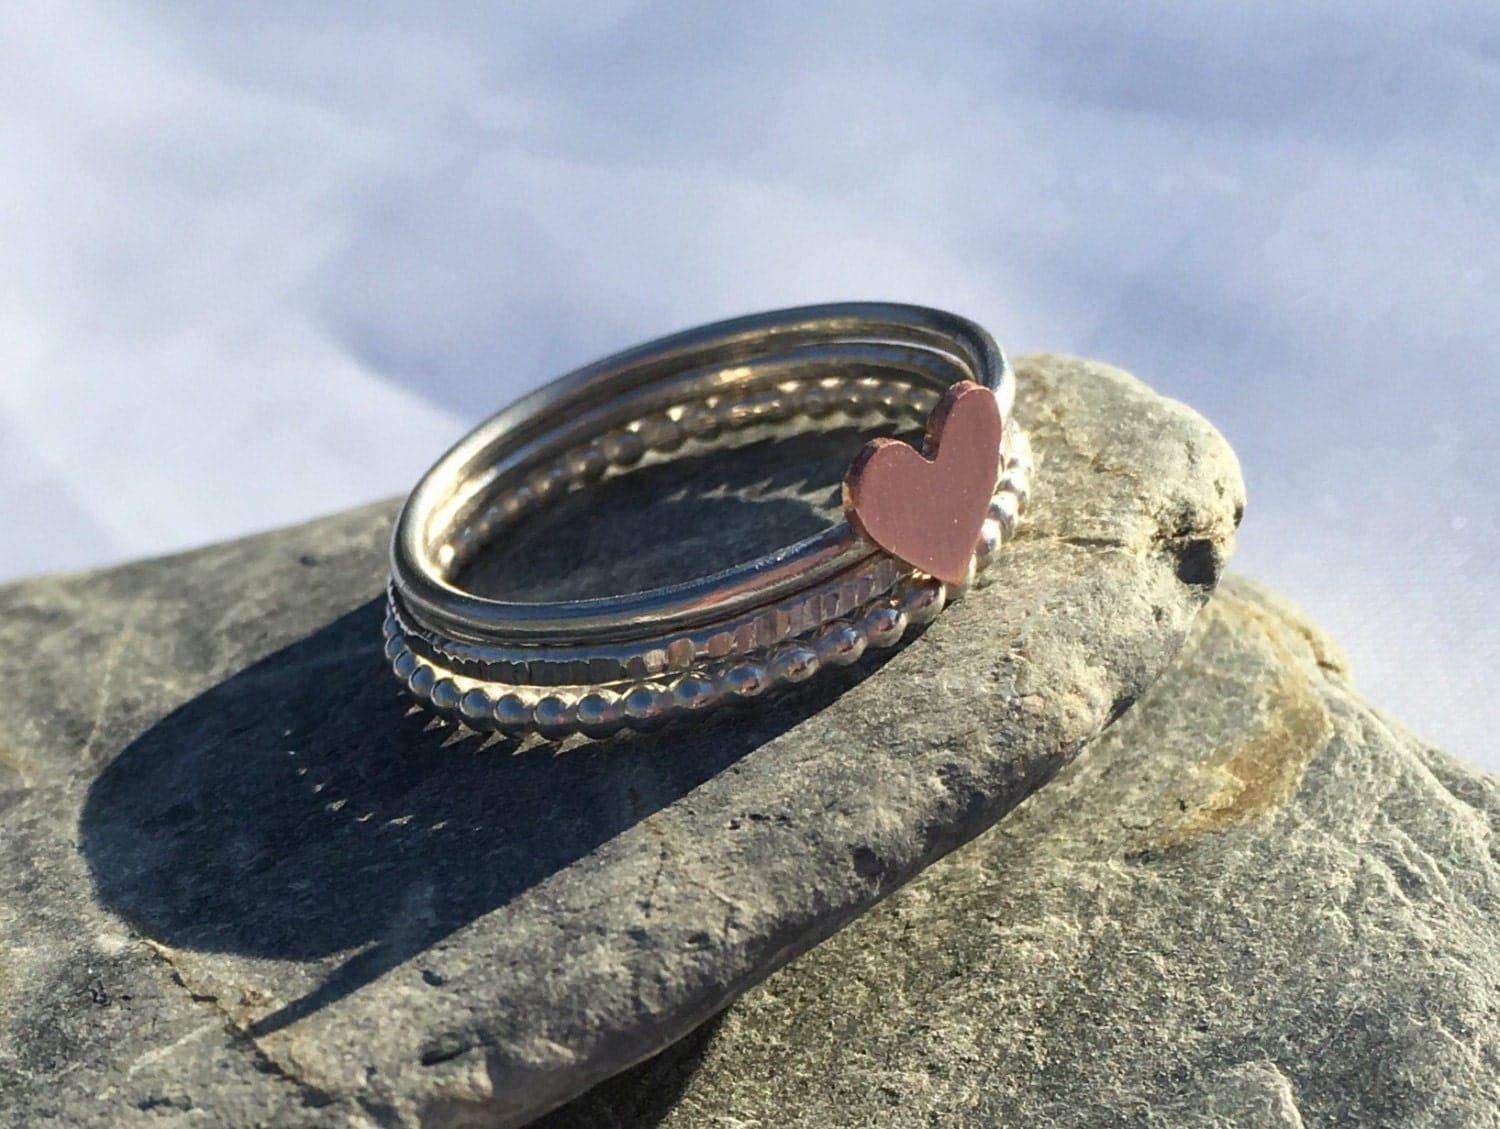 Mixed Metal Heart Stacking Ring Set Three Ring Stack Beaded Ring Sterling Silver Rings Copper Heart Ring Bubble Ring Textured Ring